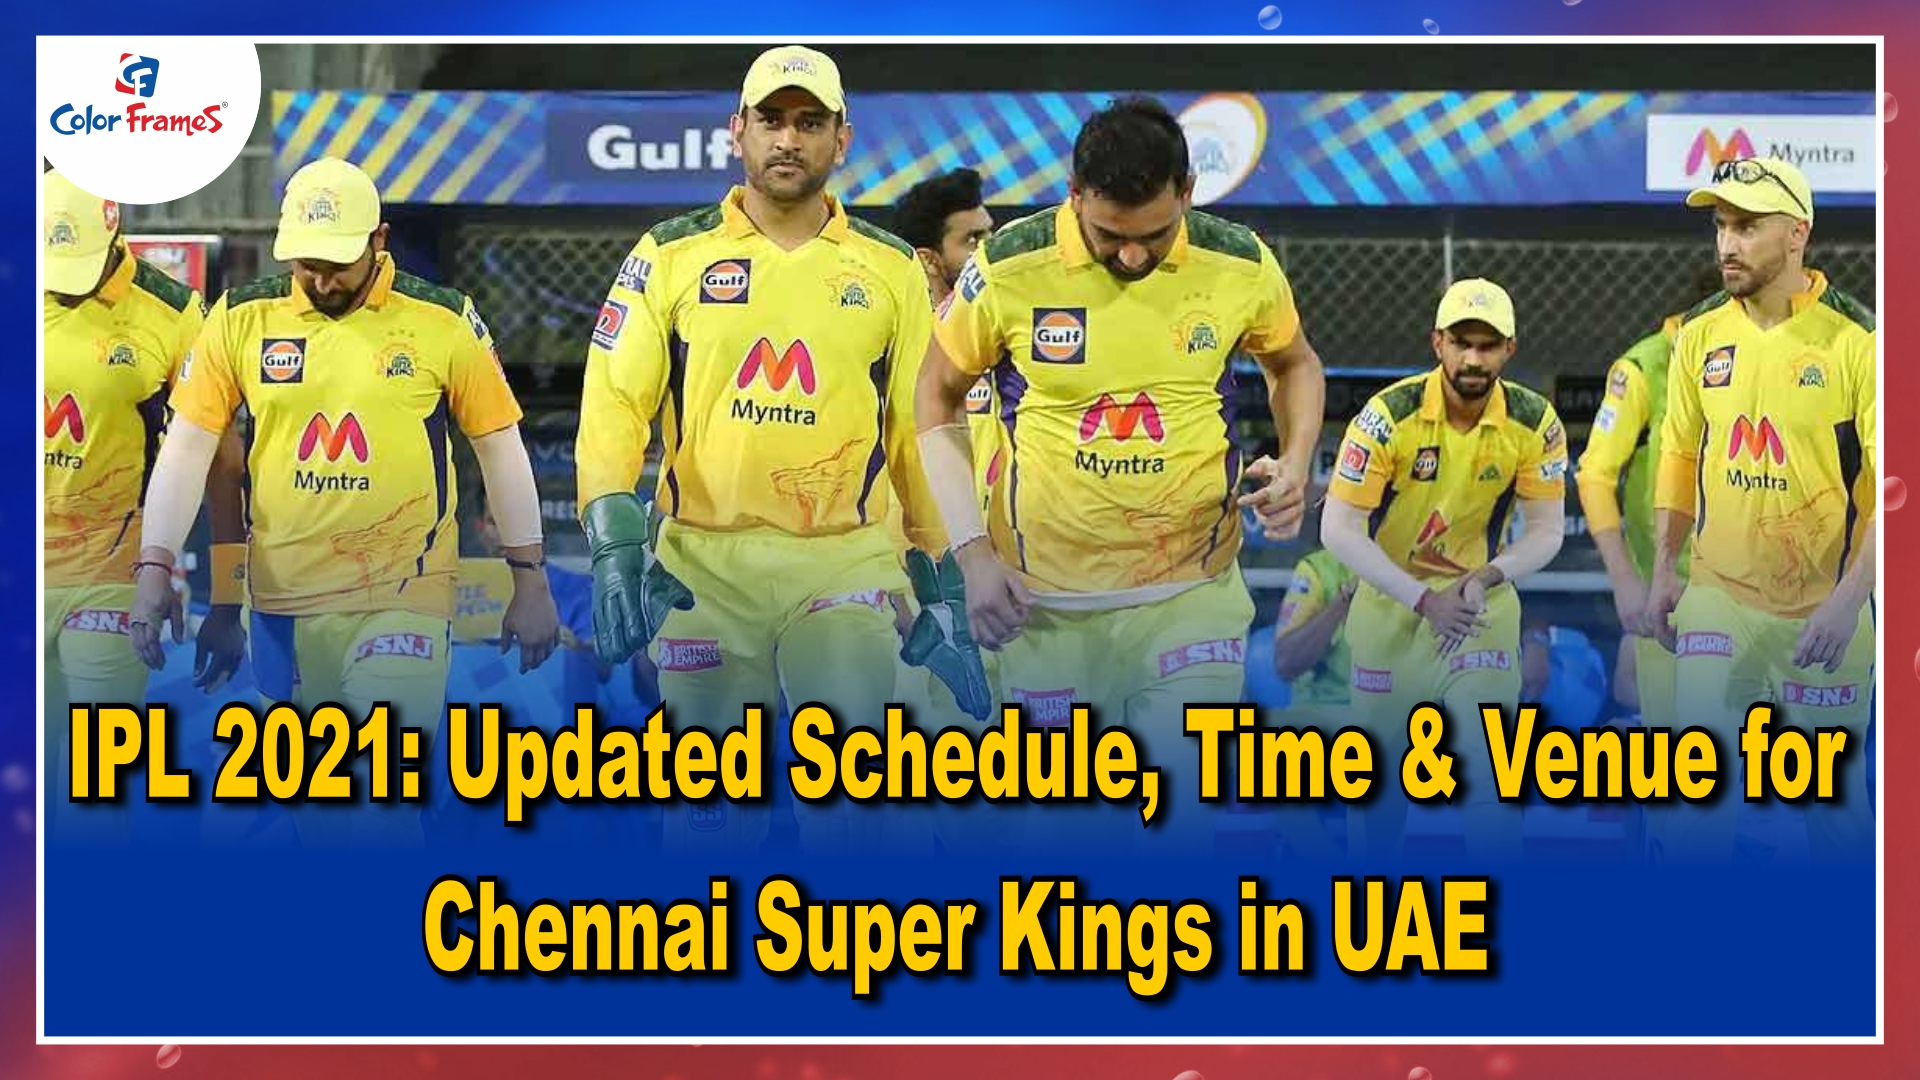 IPL 2021: Updated Time and Venue for Chennai Super Kings (CSK)